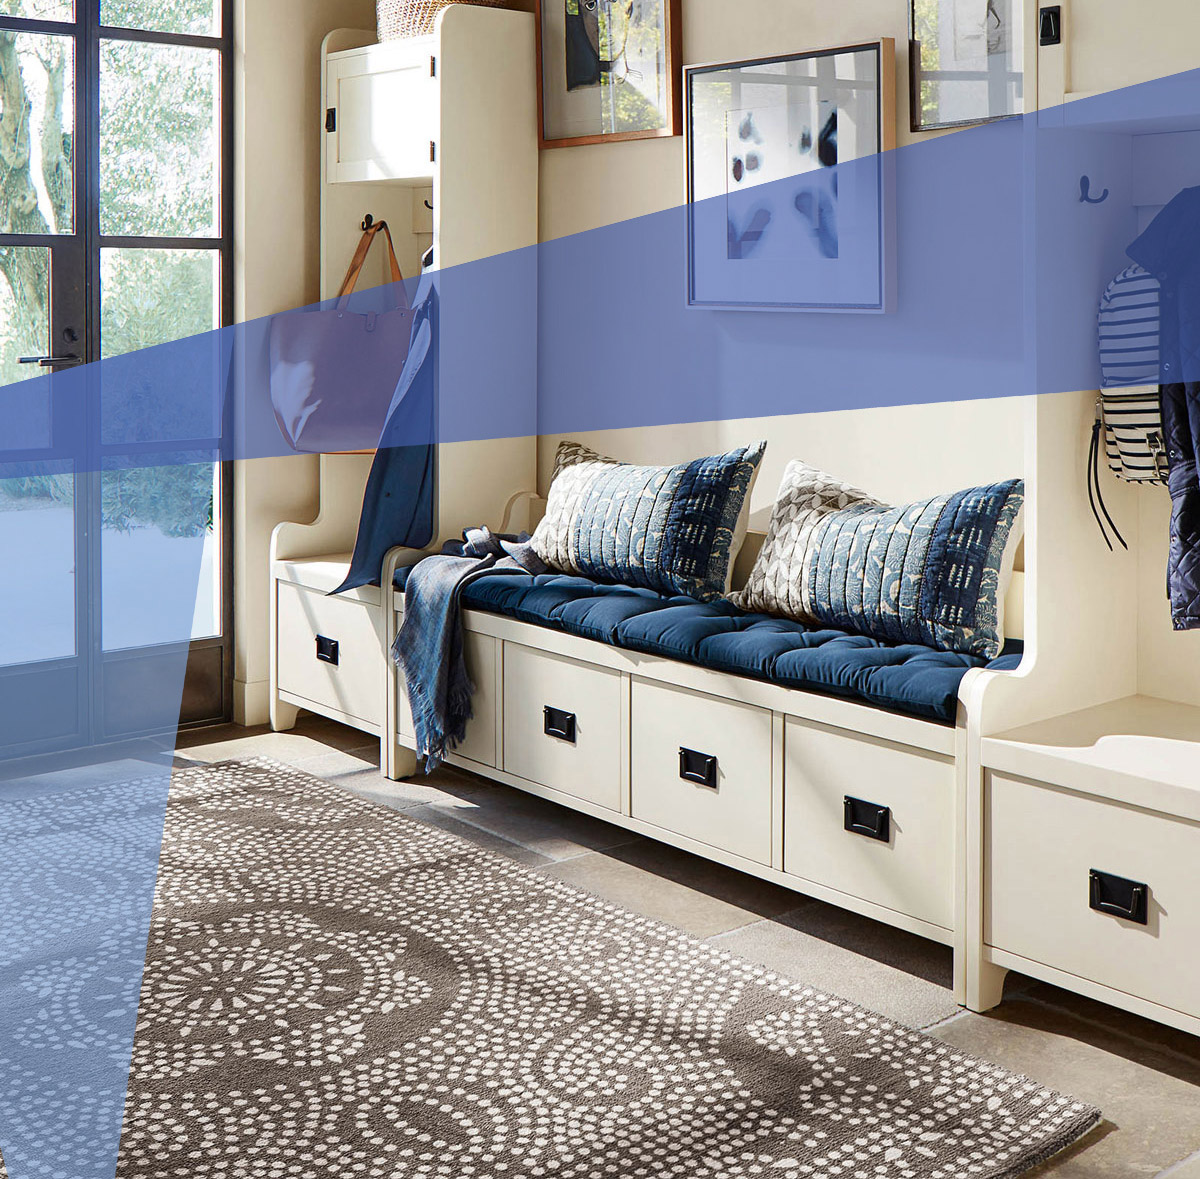 Entryway ideas - blue pillows and built-ins tout